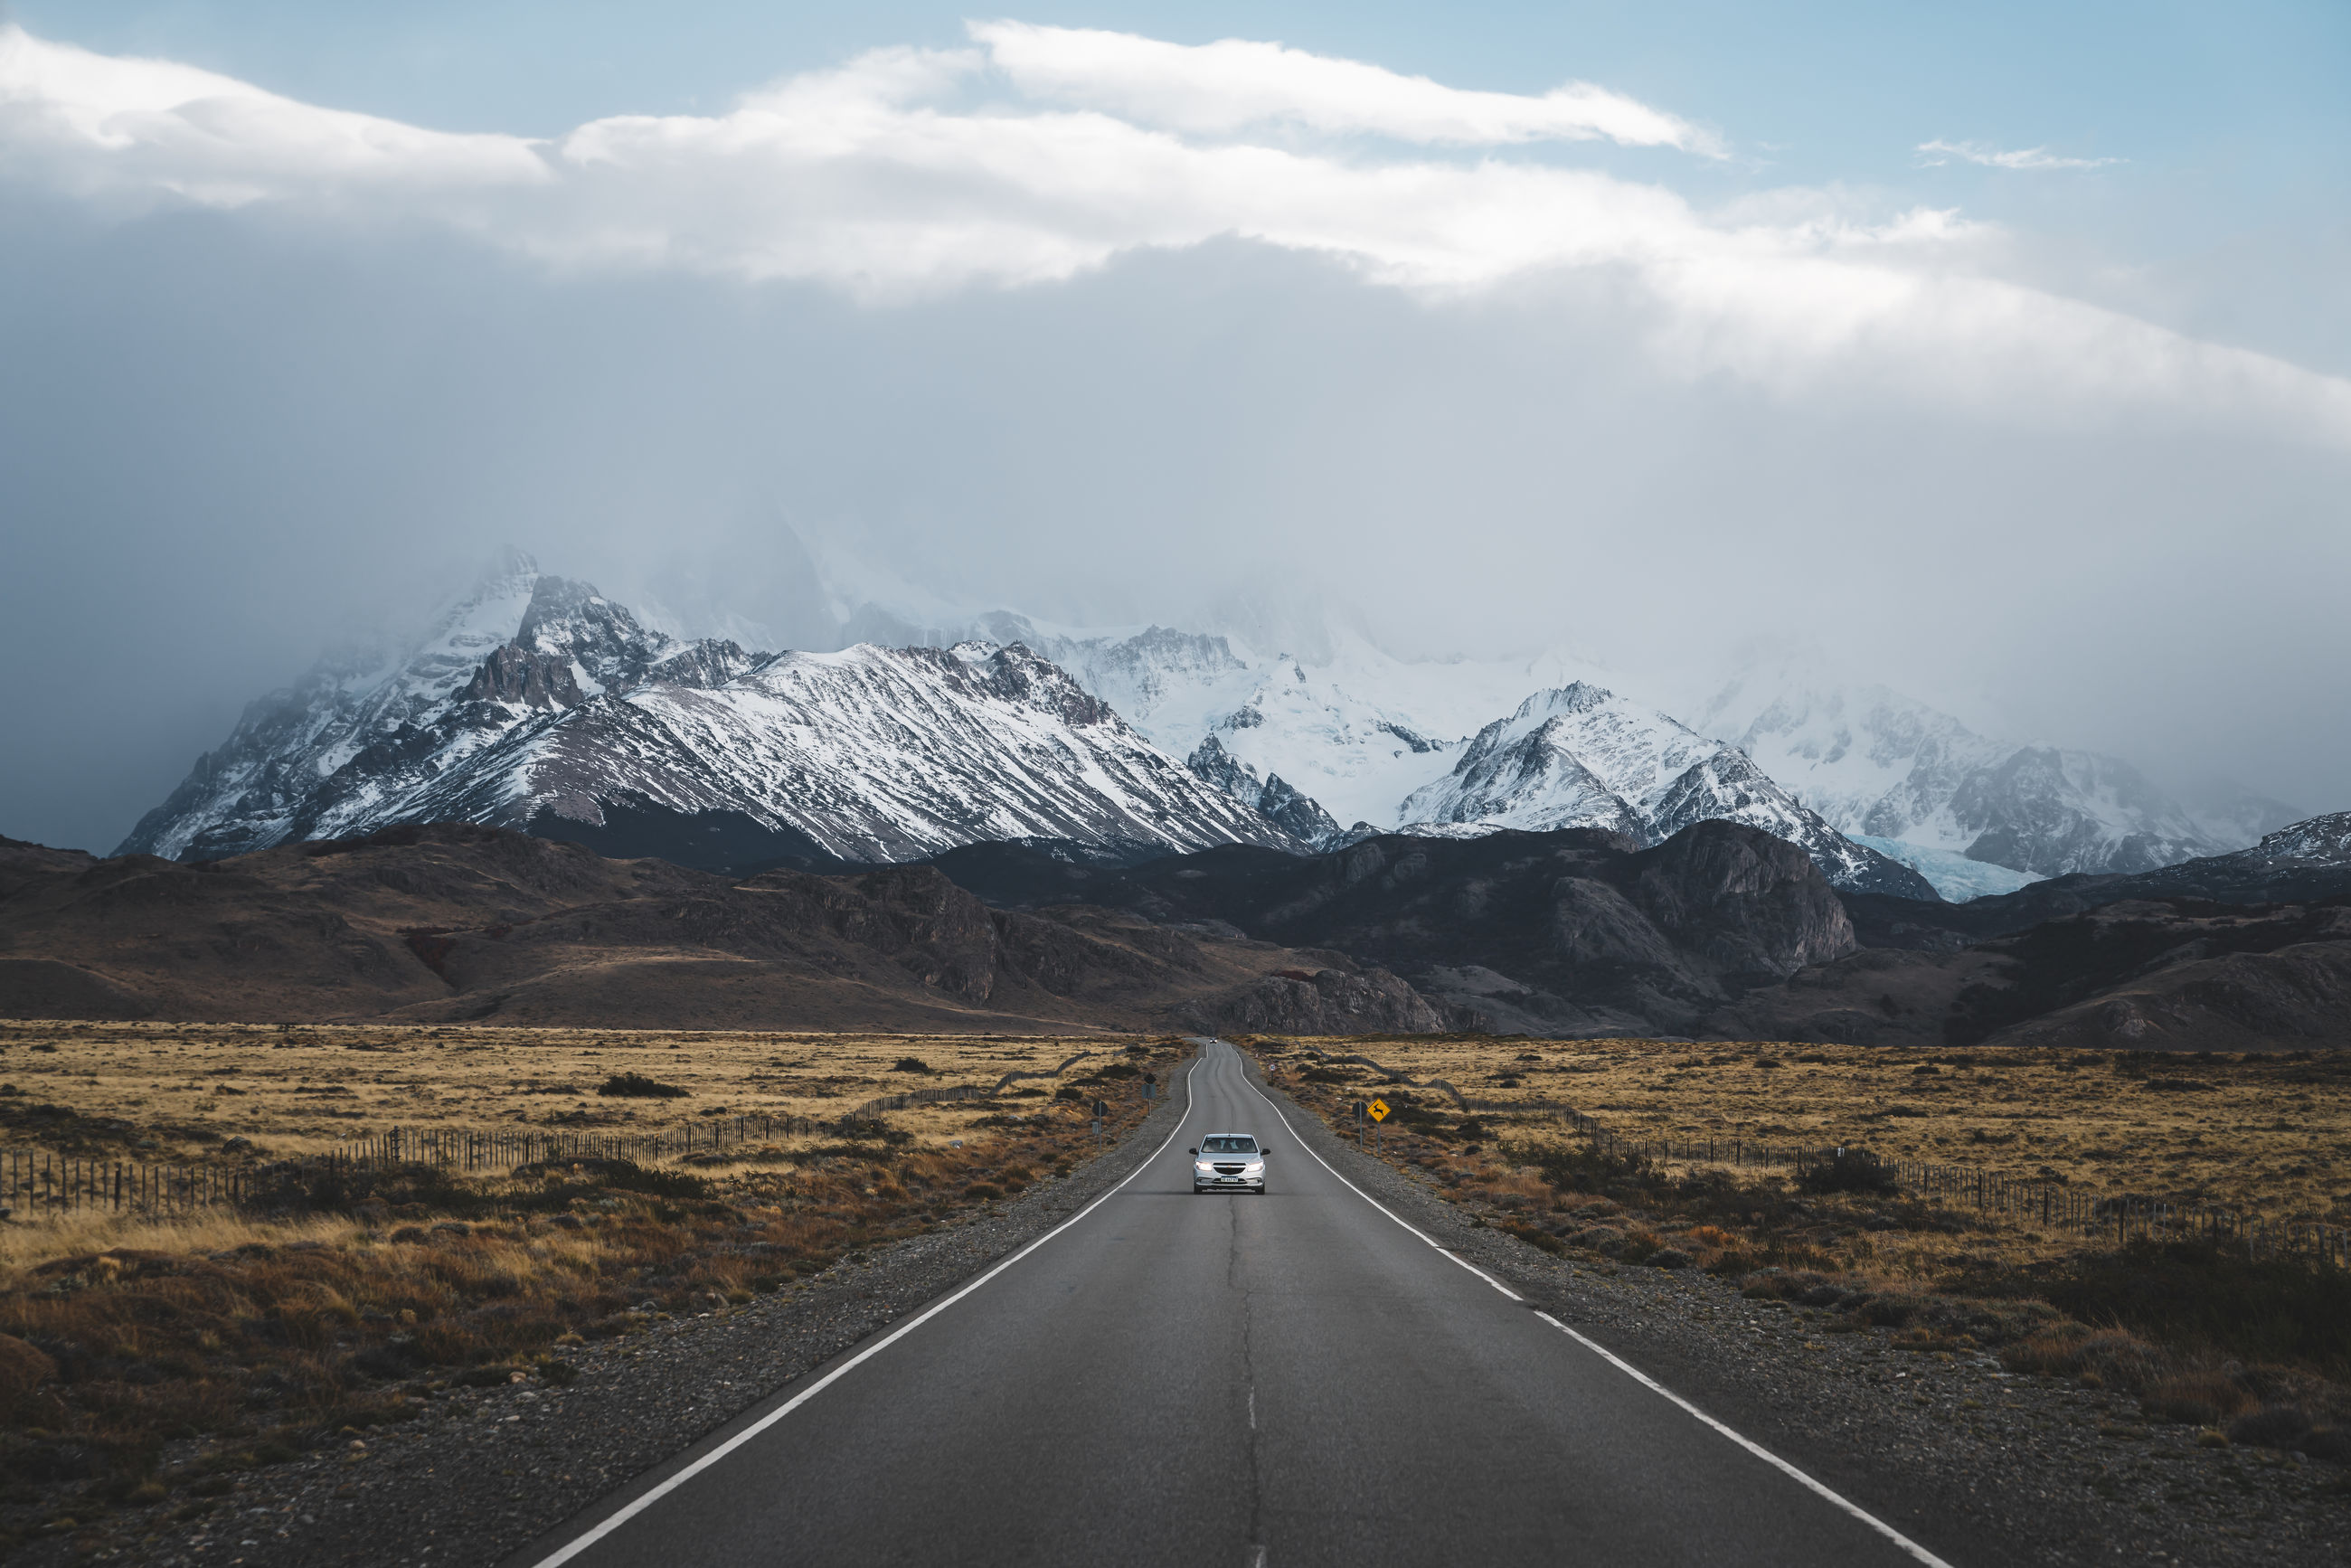 road, mountain, transportation, direction, the way forward, symbol, beauty in nature, snow, landscape, sky, environment, road marking, marking, mountain range, cold temperature, scenics - nature, cloud - sky, diminishing perspective, winter, no people, snowcapped mountain, outdoors, mountain peak, dividing line